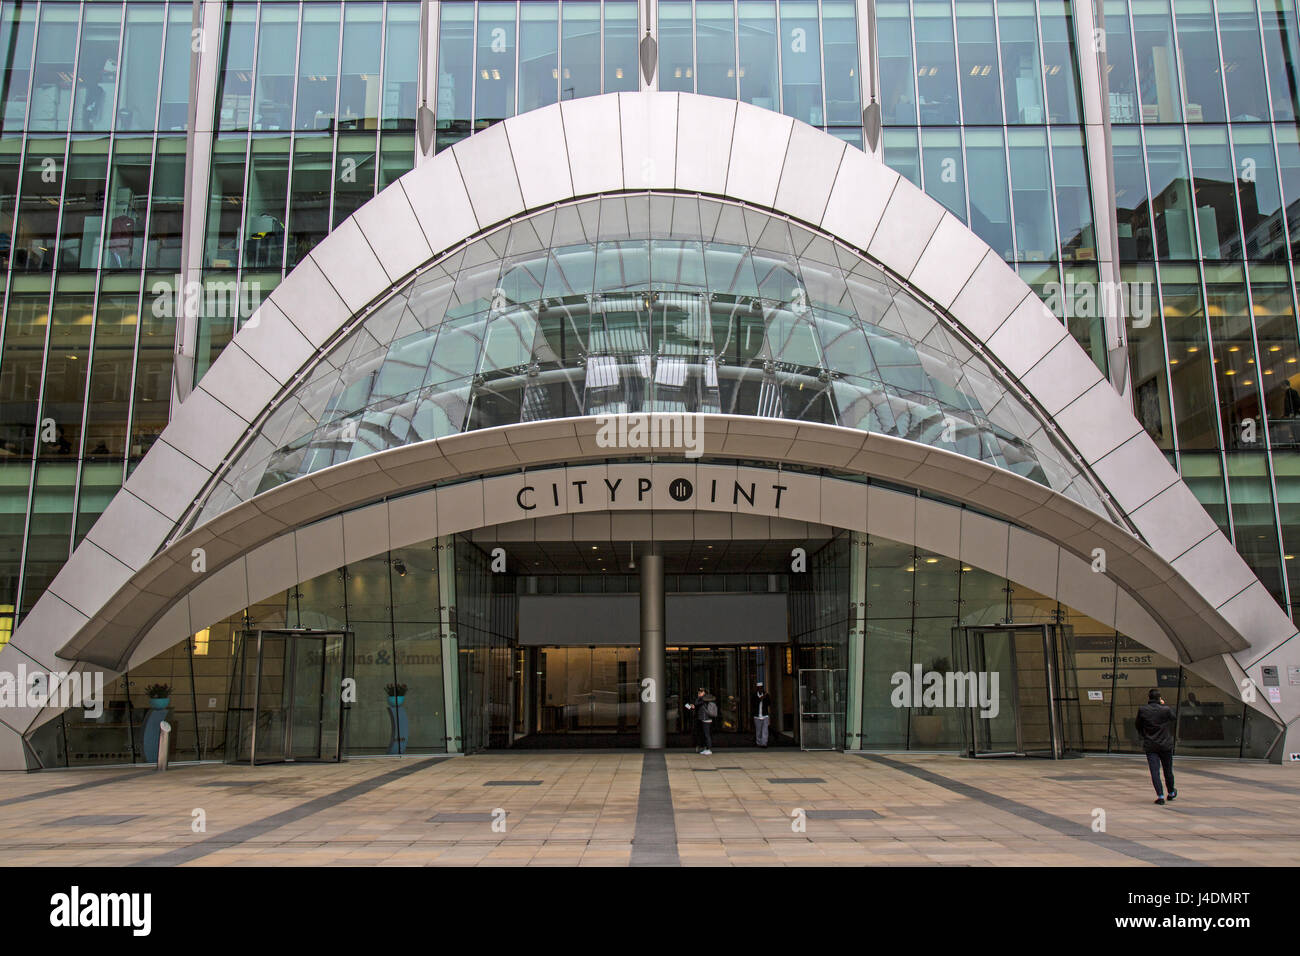 Entrance to the Citypoint Business centre on Ropemake Street in London. - Stock Image